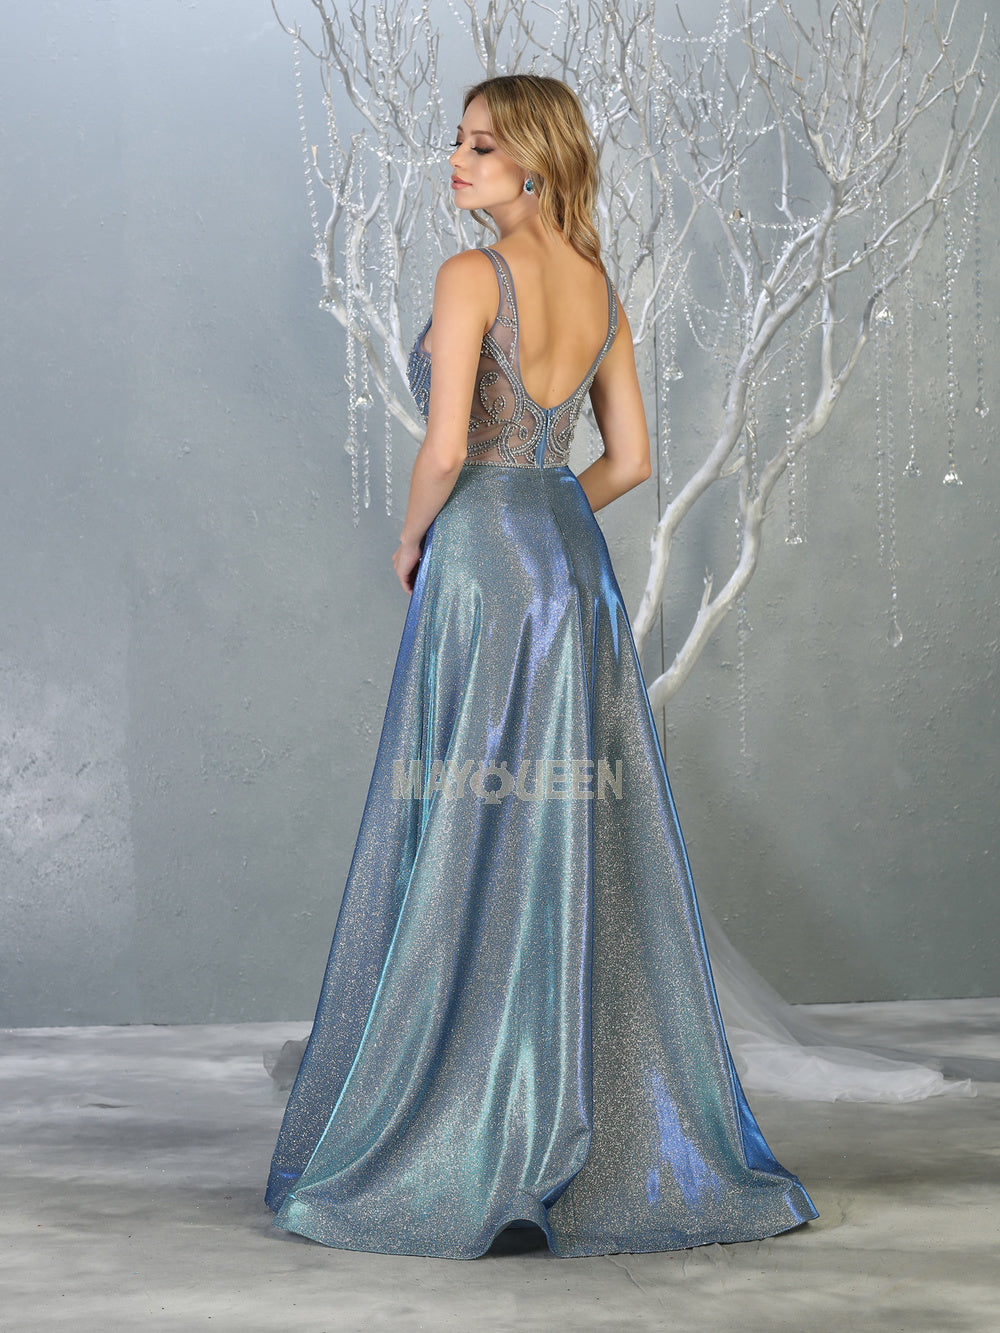 Mayqueen Size Chart E MQ 7819 - Metallic A-Line Prom Gown with Beaded Lace Embroidered Bodice & Open Back - Diggz Prom